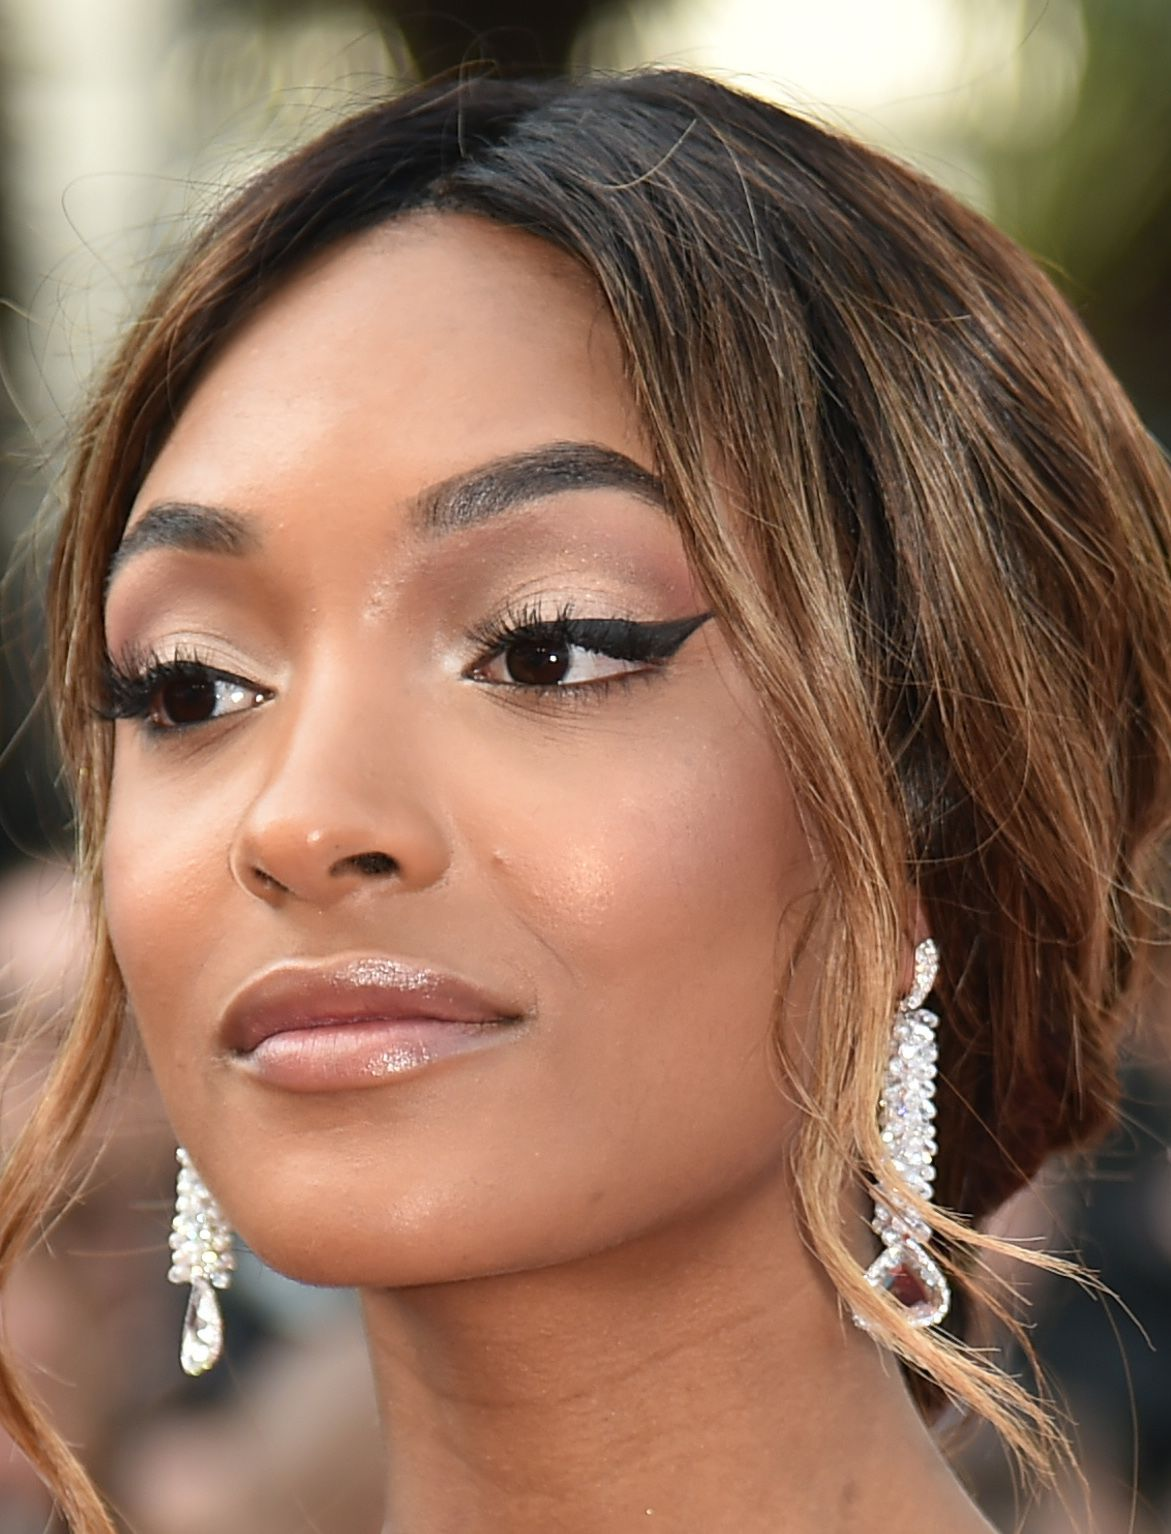 eyes-how-to-do-your-makeup-for-wedding-guest-beauty-wing-eyeliner-nude-lips.jpg